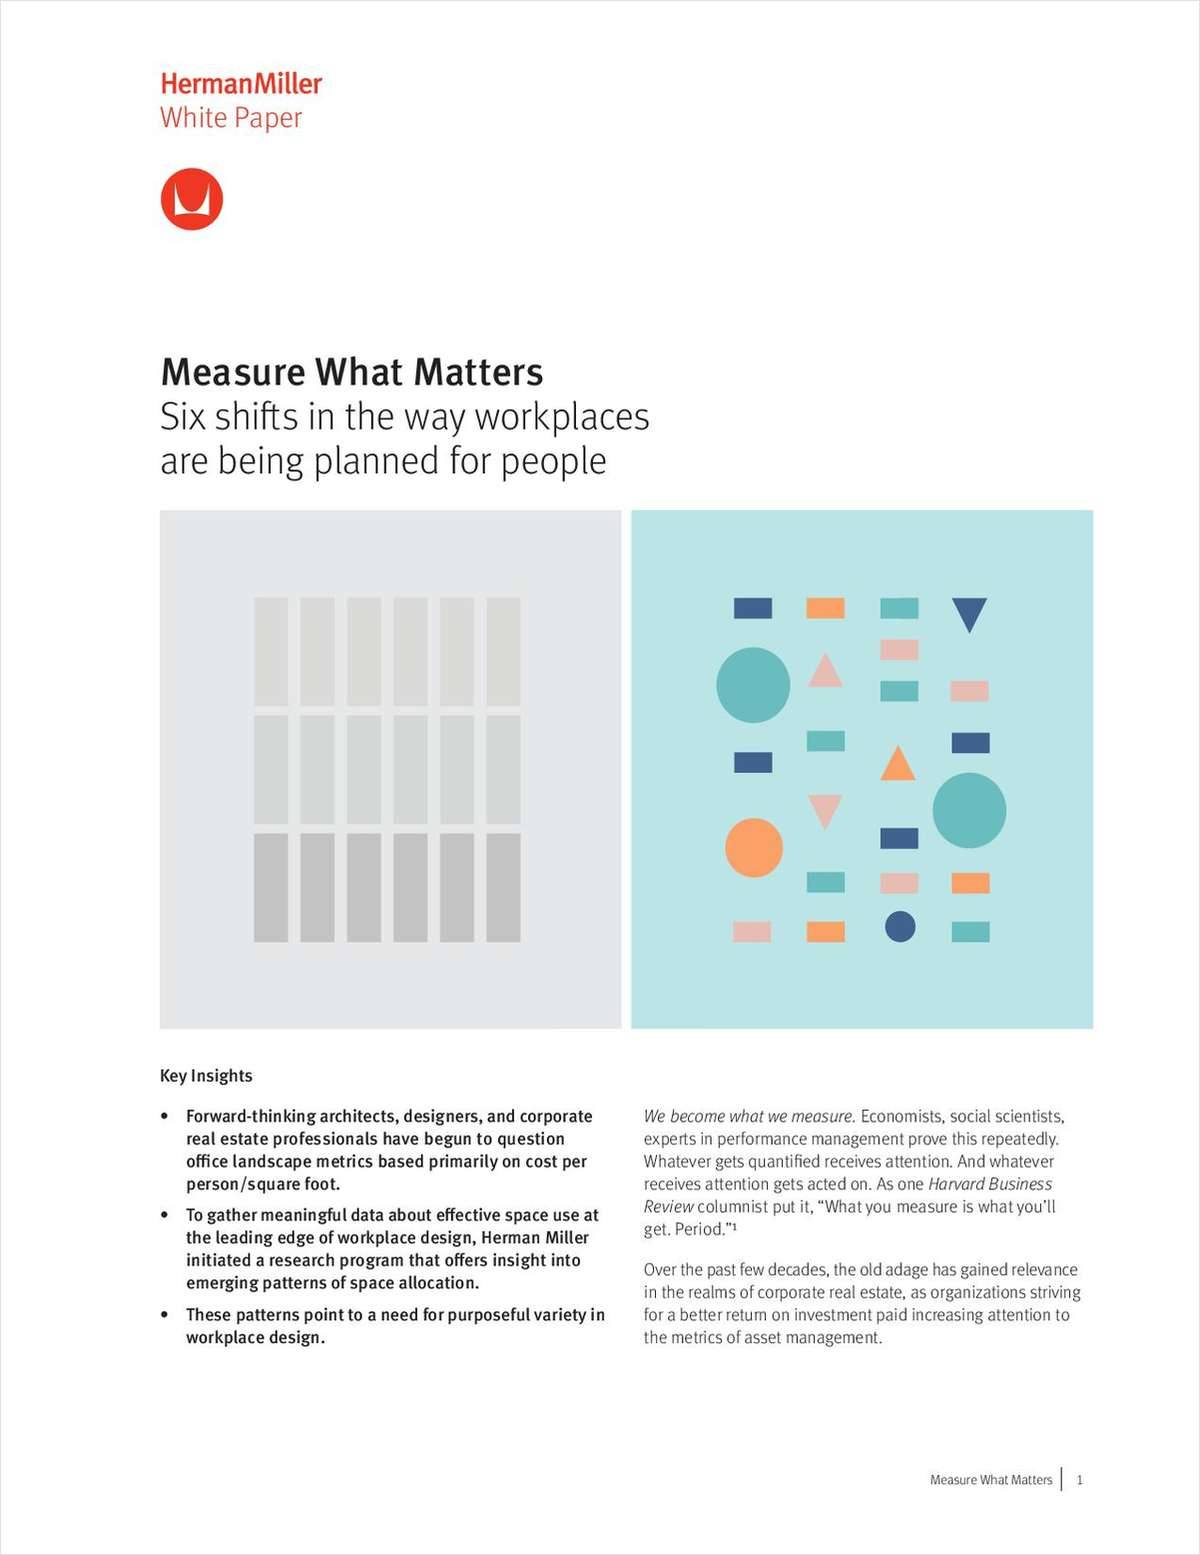 Measure What Matters - Six shifts in the way workplaces are being planned for people.